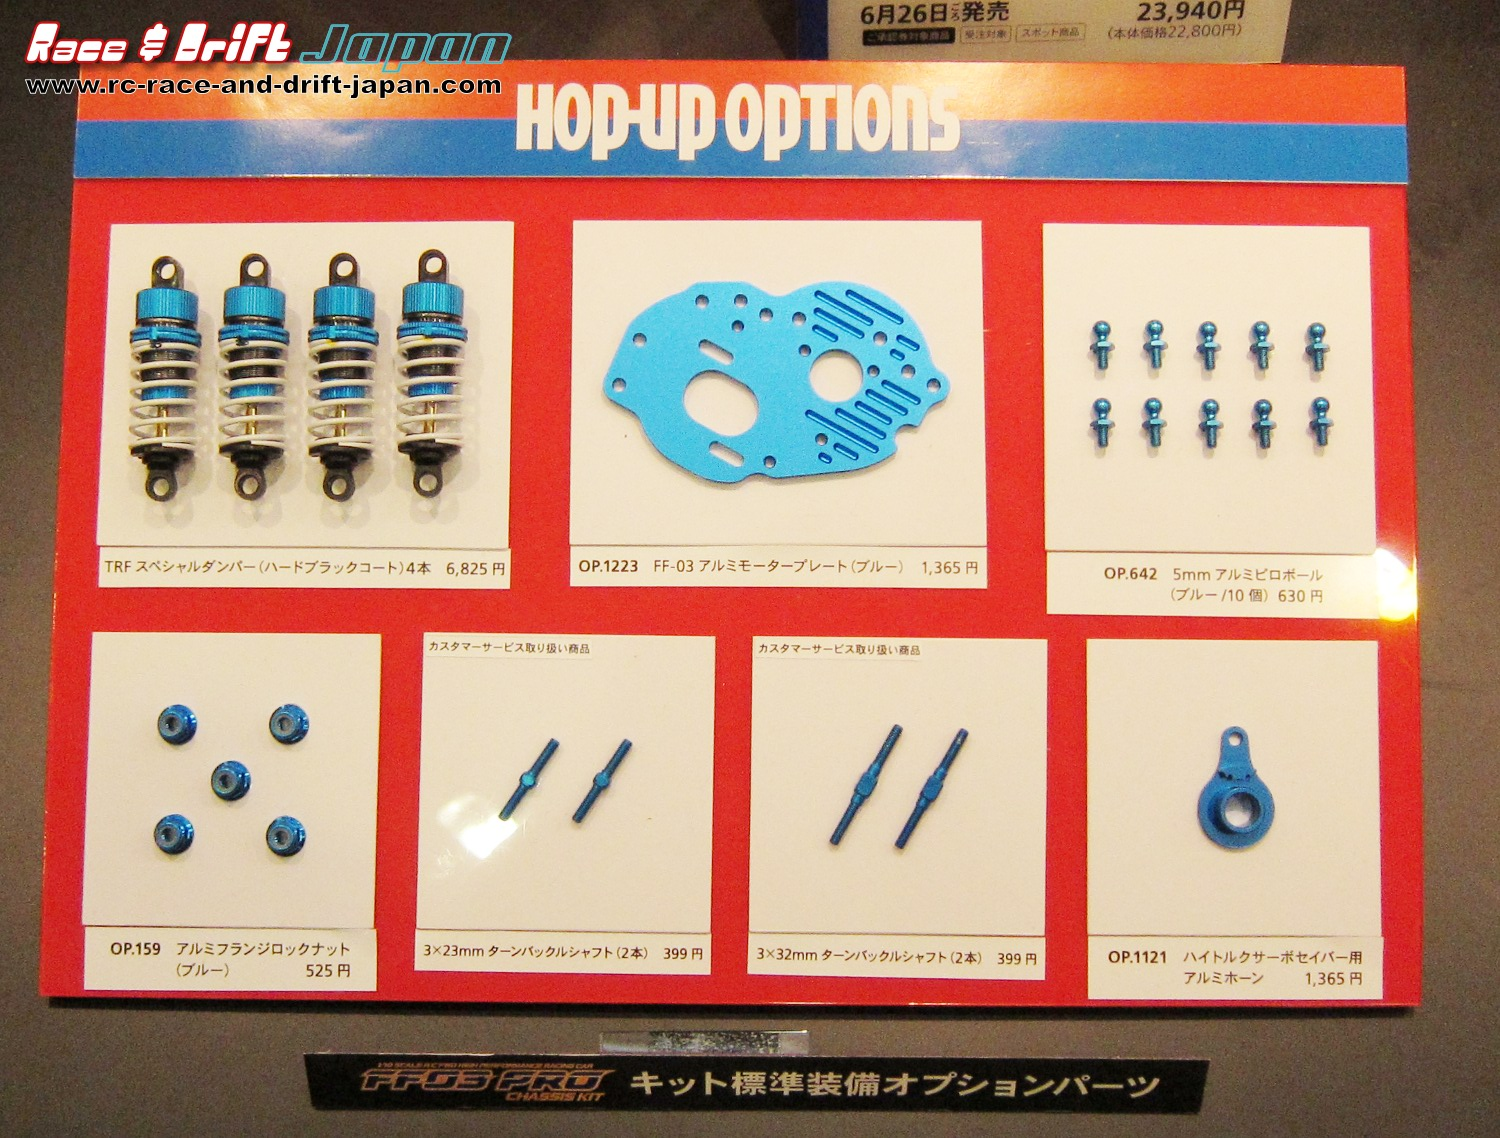 New Tamiya Releases - Upcoming Shizuouka Show - Page 2 IMG_0239